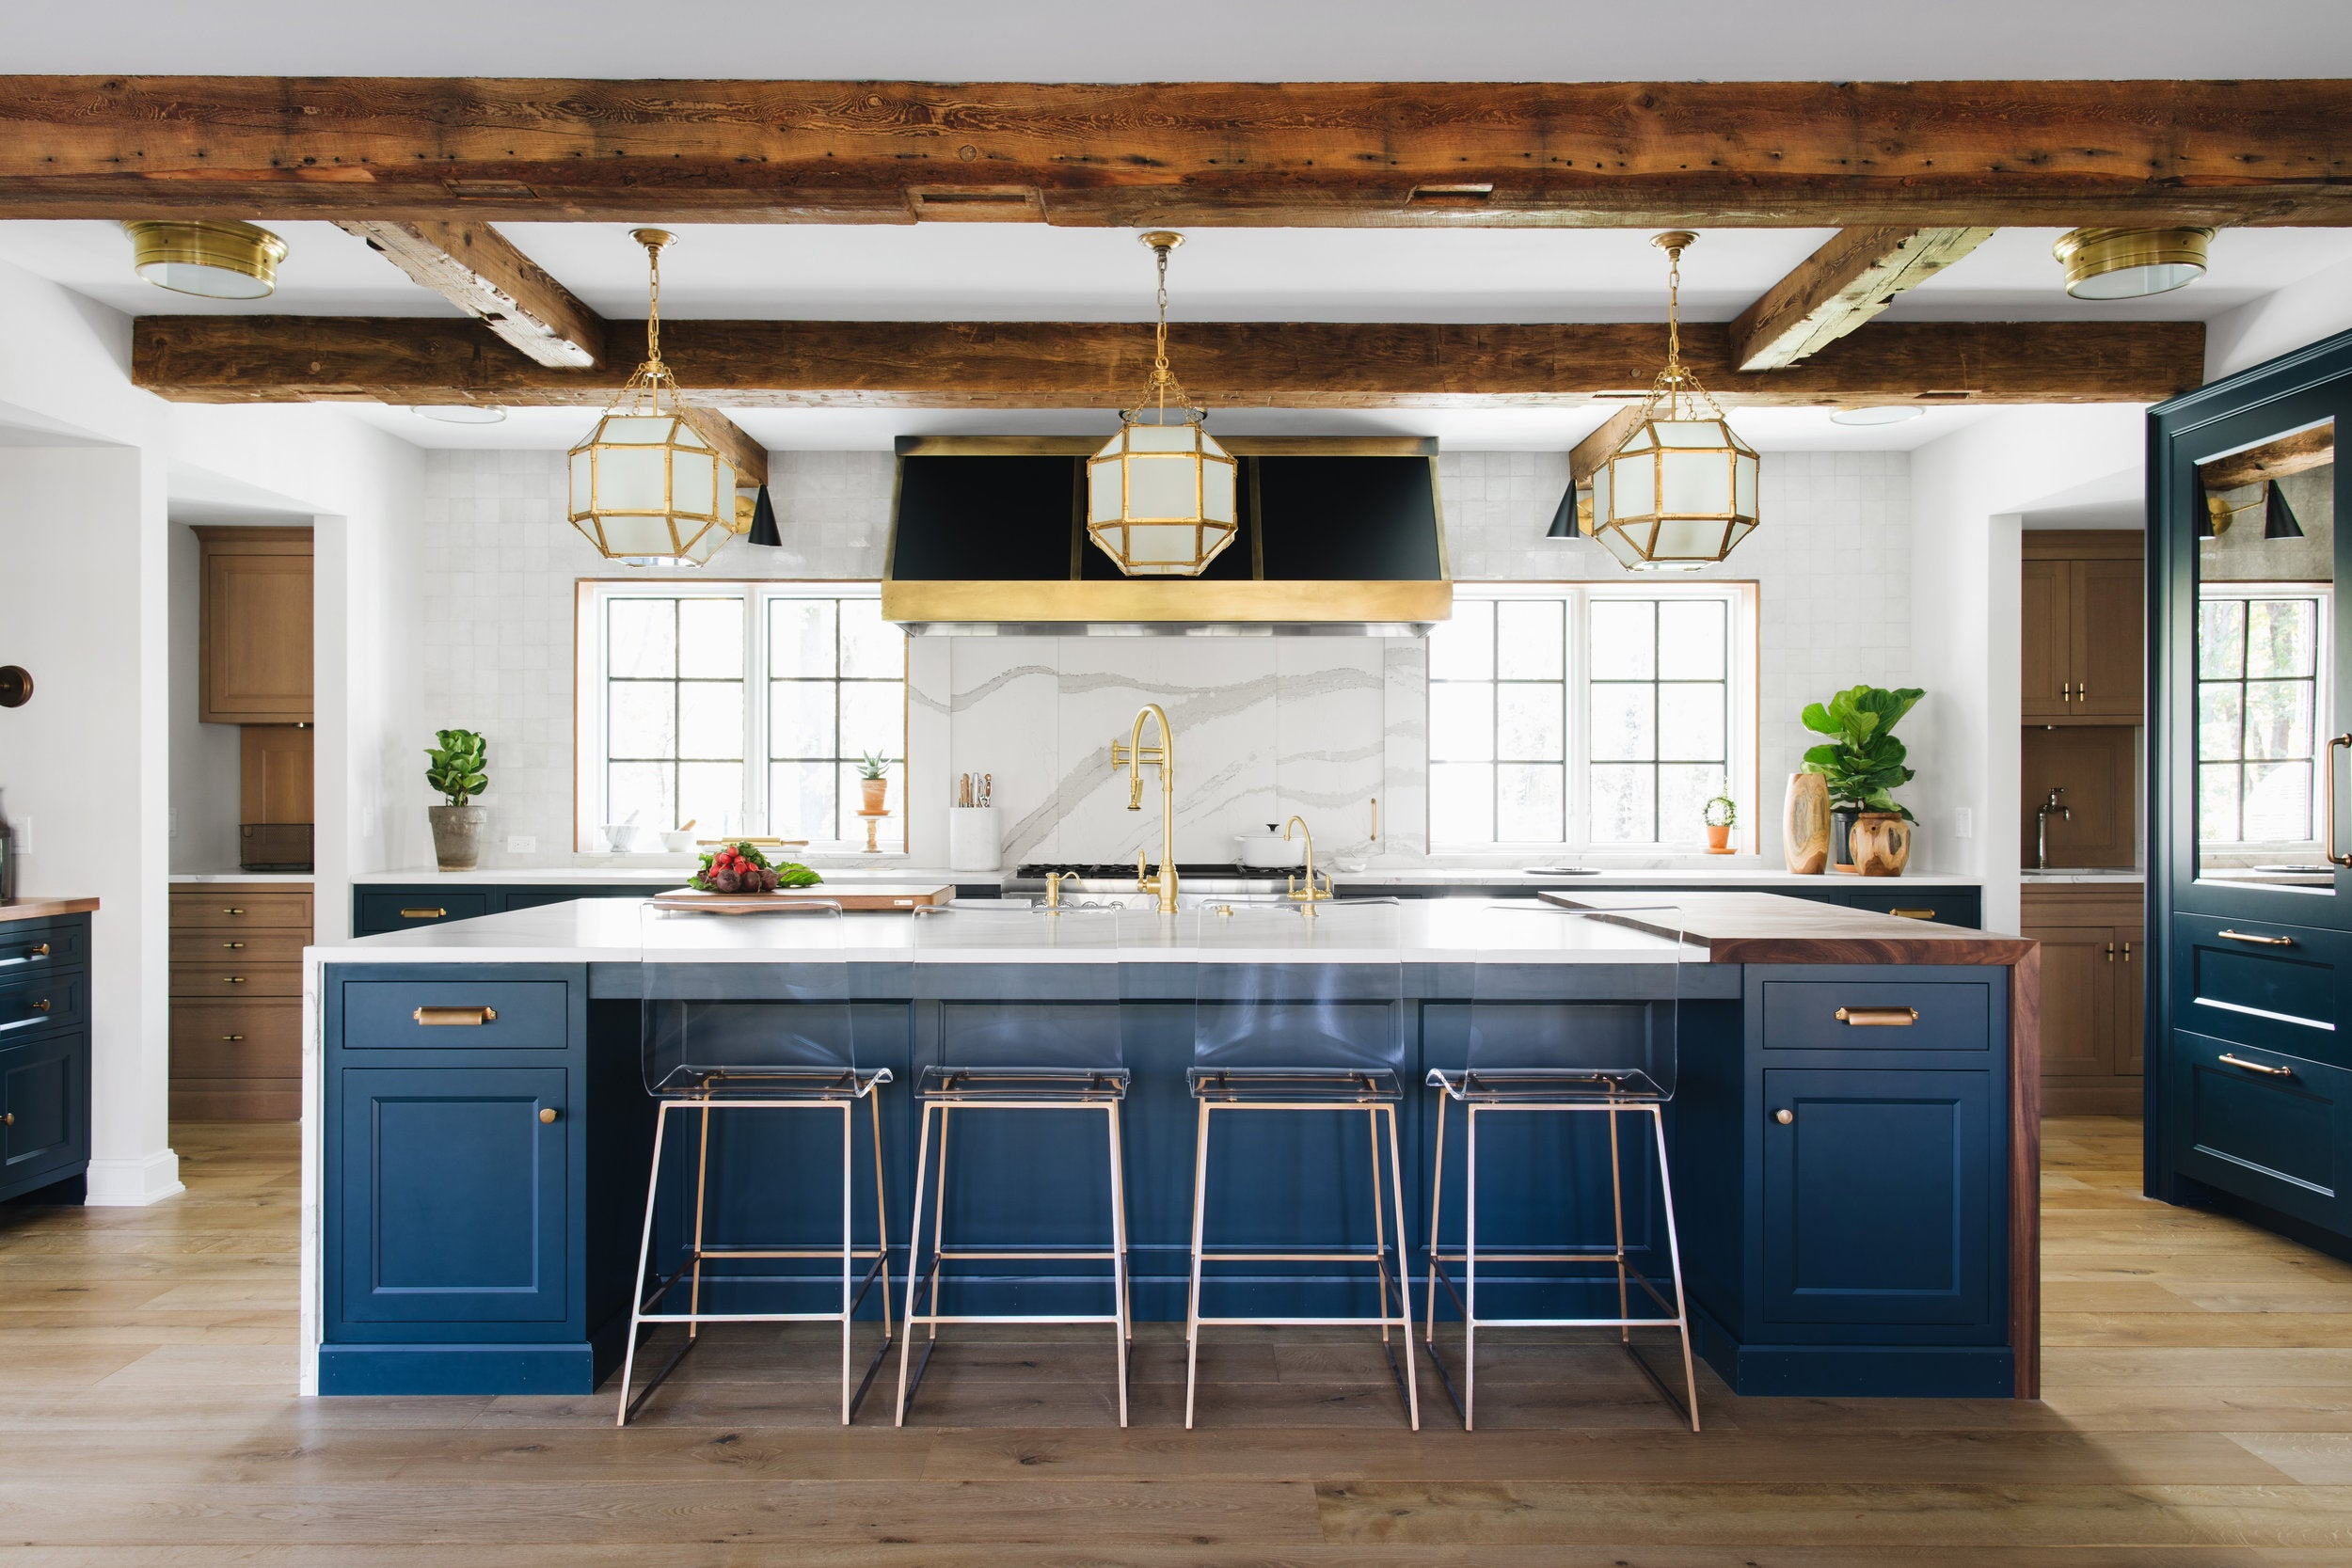 Blue island and white marble counter tops in Jean Stoffer's Lakeside house kitchen